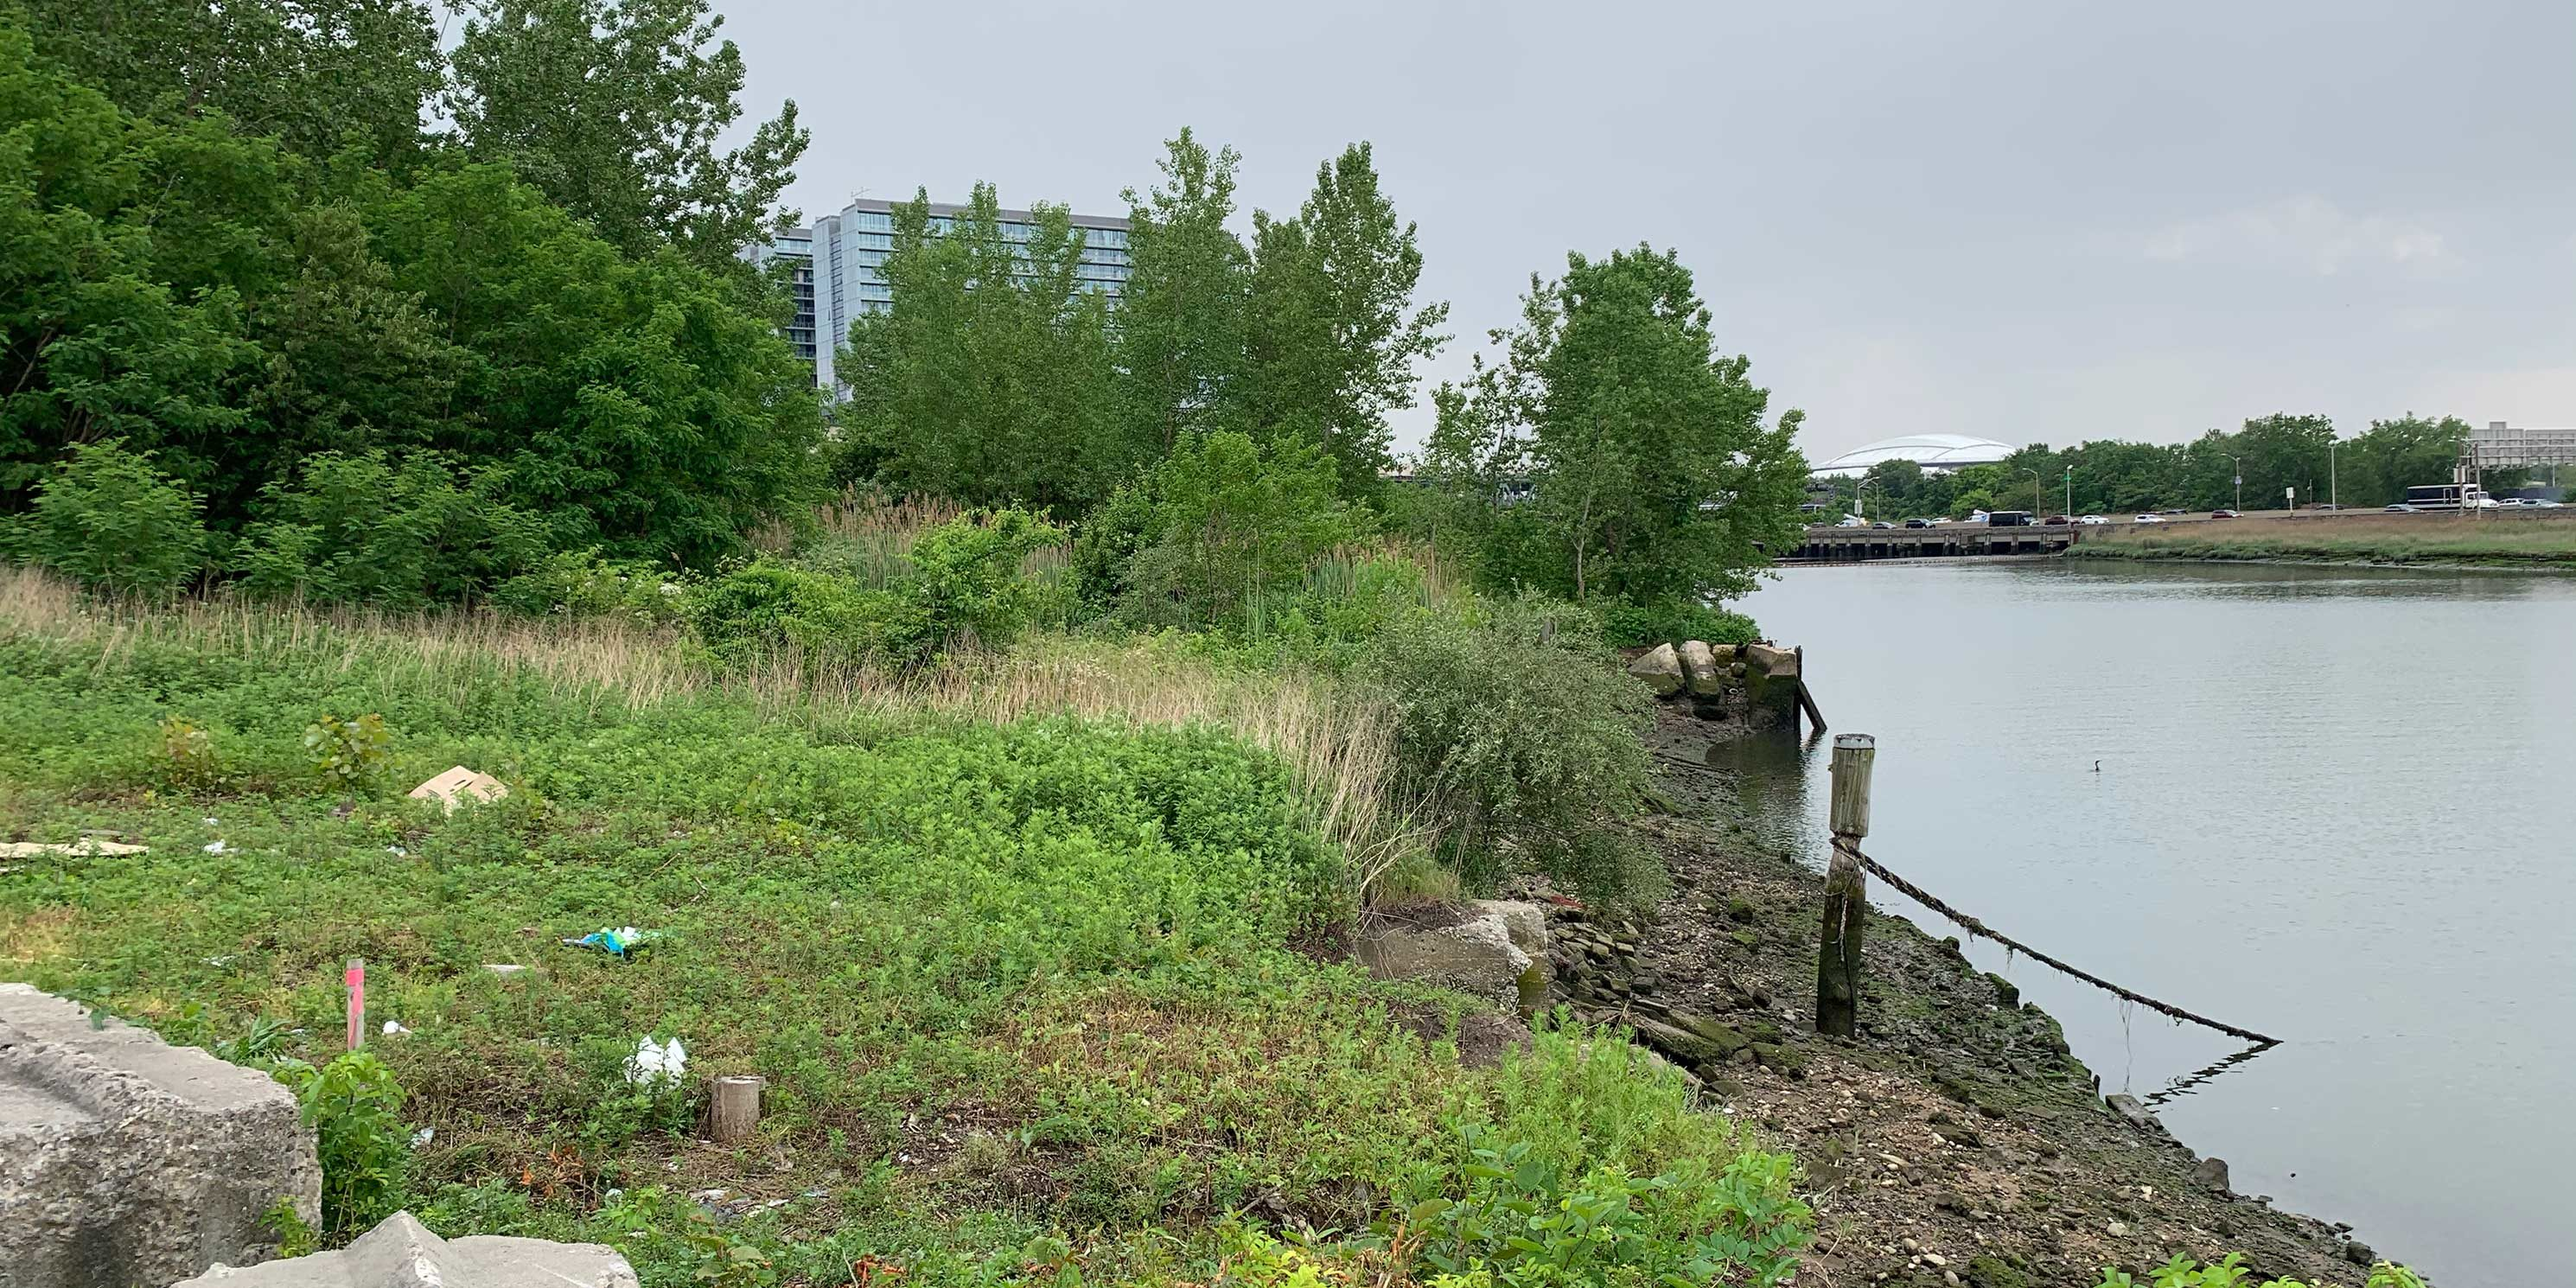 dilapidated and overgrown Flushing Creek shoreline in Flushing, Queens